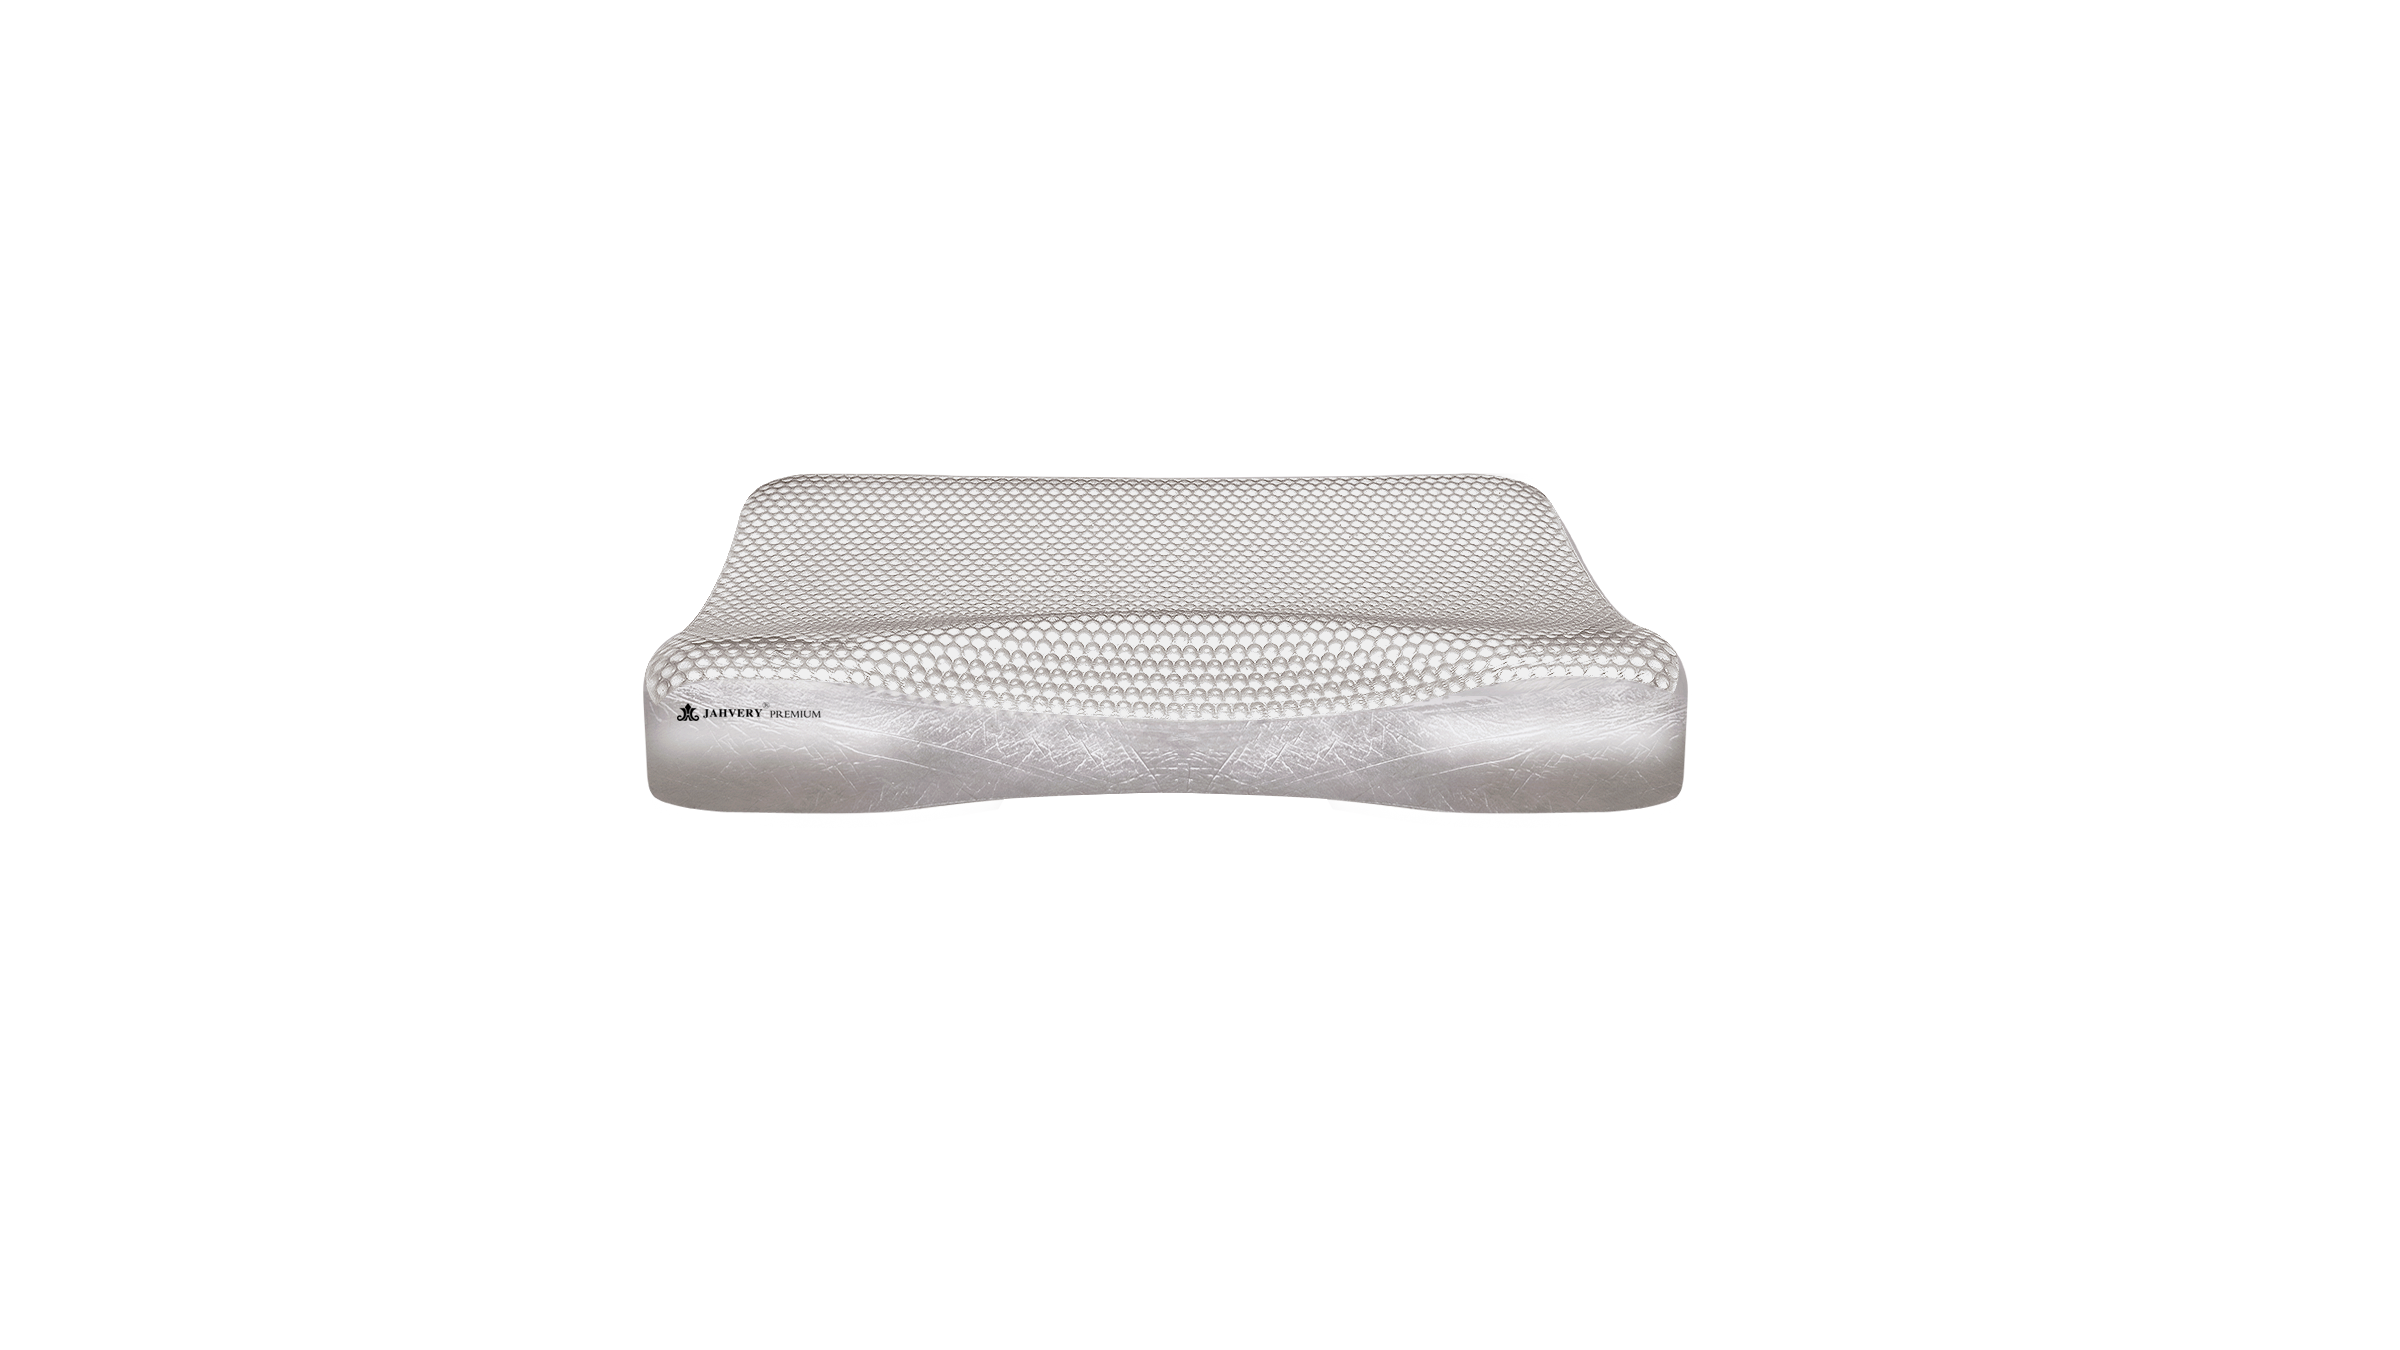 jahvery lawrenthie high-end series crystal gel suspending bone-shape cervical care pillow